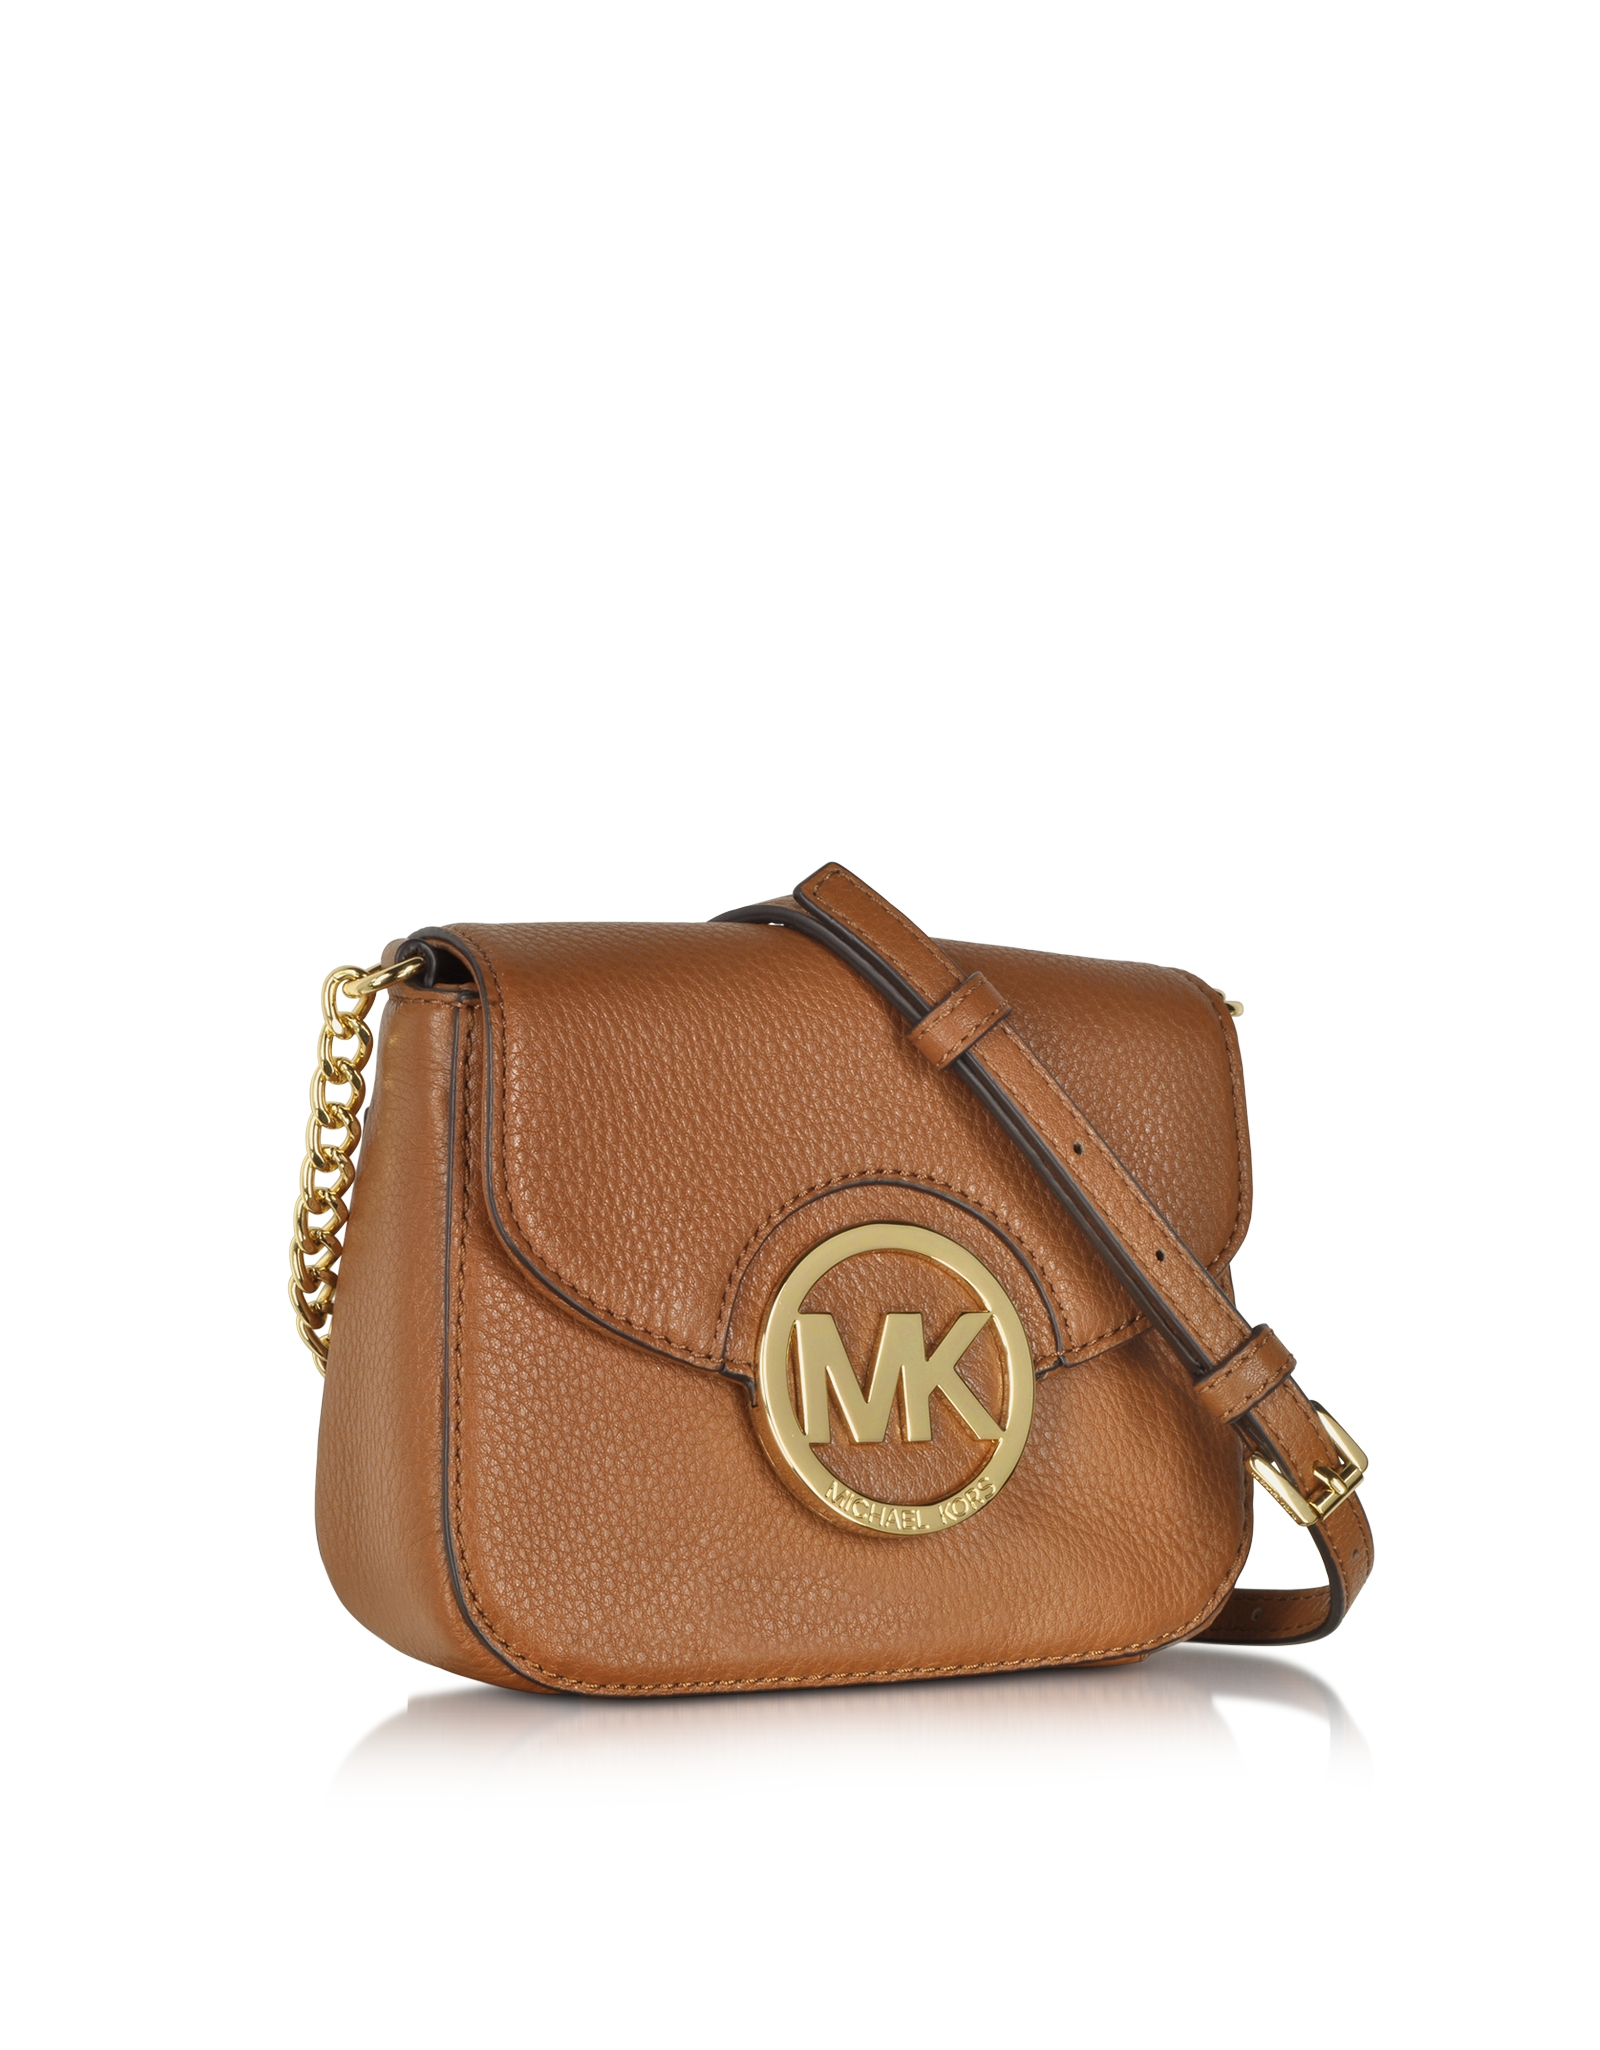 6036bad37583e Lyst - Michael Kors Fulton Luggage Leather Small Crossbody Bag in ...